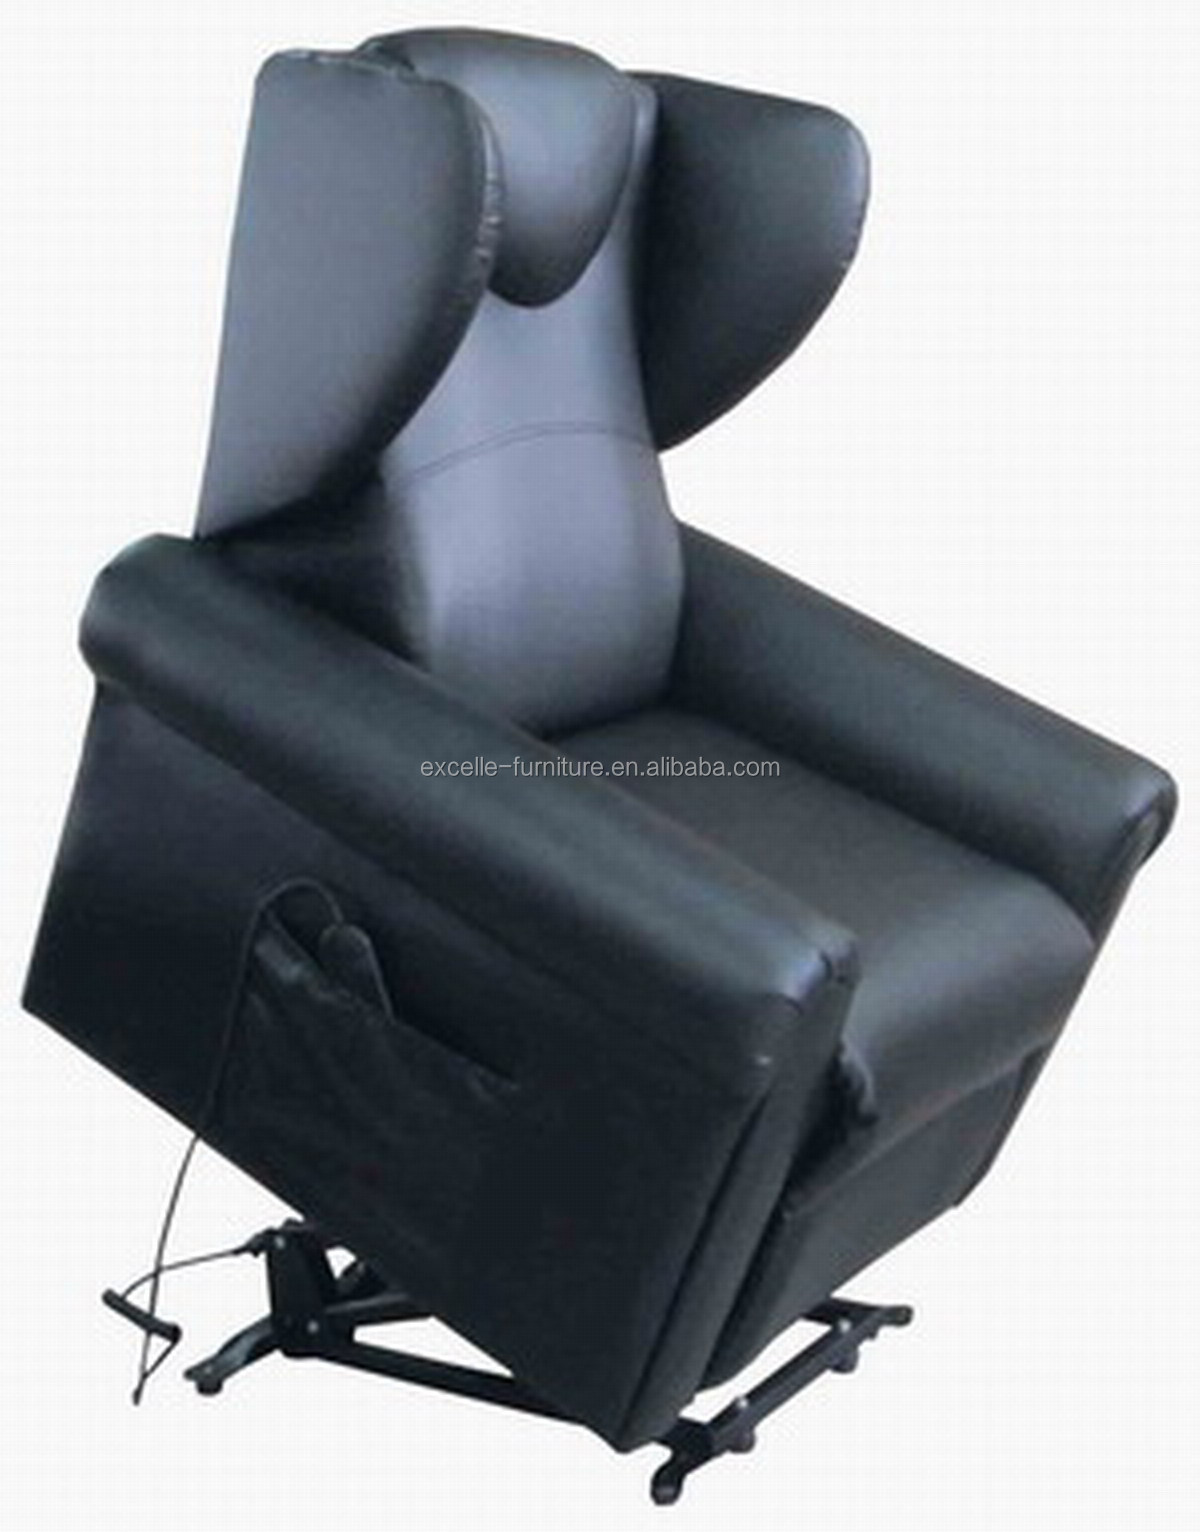 Okin Lift Chair Okin Lift Chair Suppliers and Manufacturers at Alibaba.com & Okin Lift Chair Okin Lift Chair Suppliers and Manufacturers at ... islam-shia.org